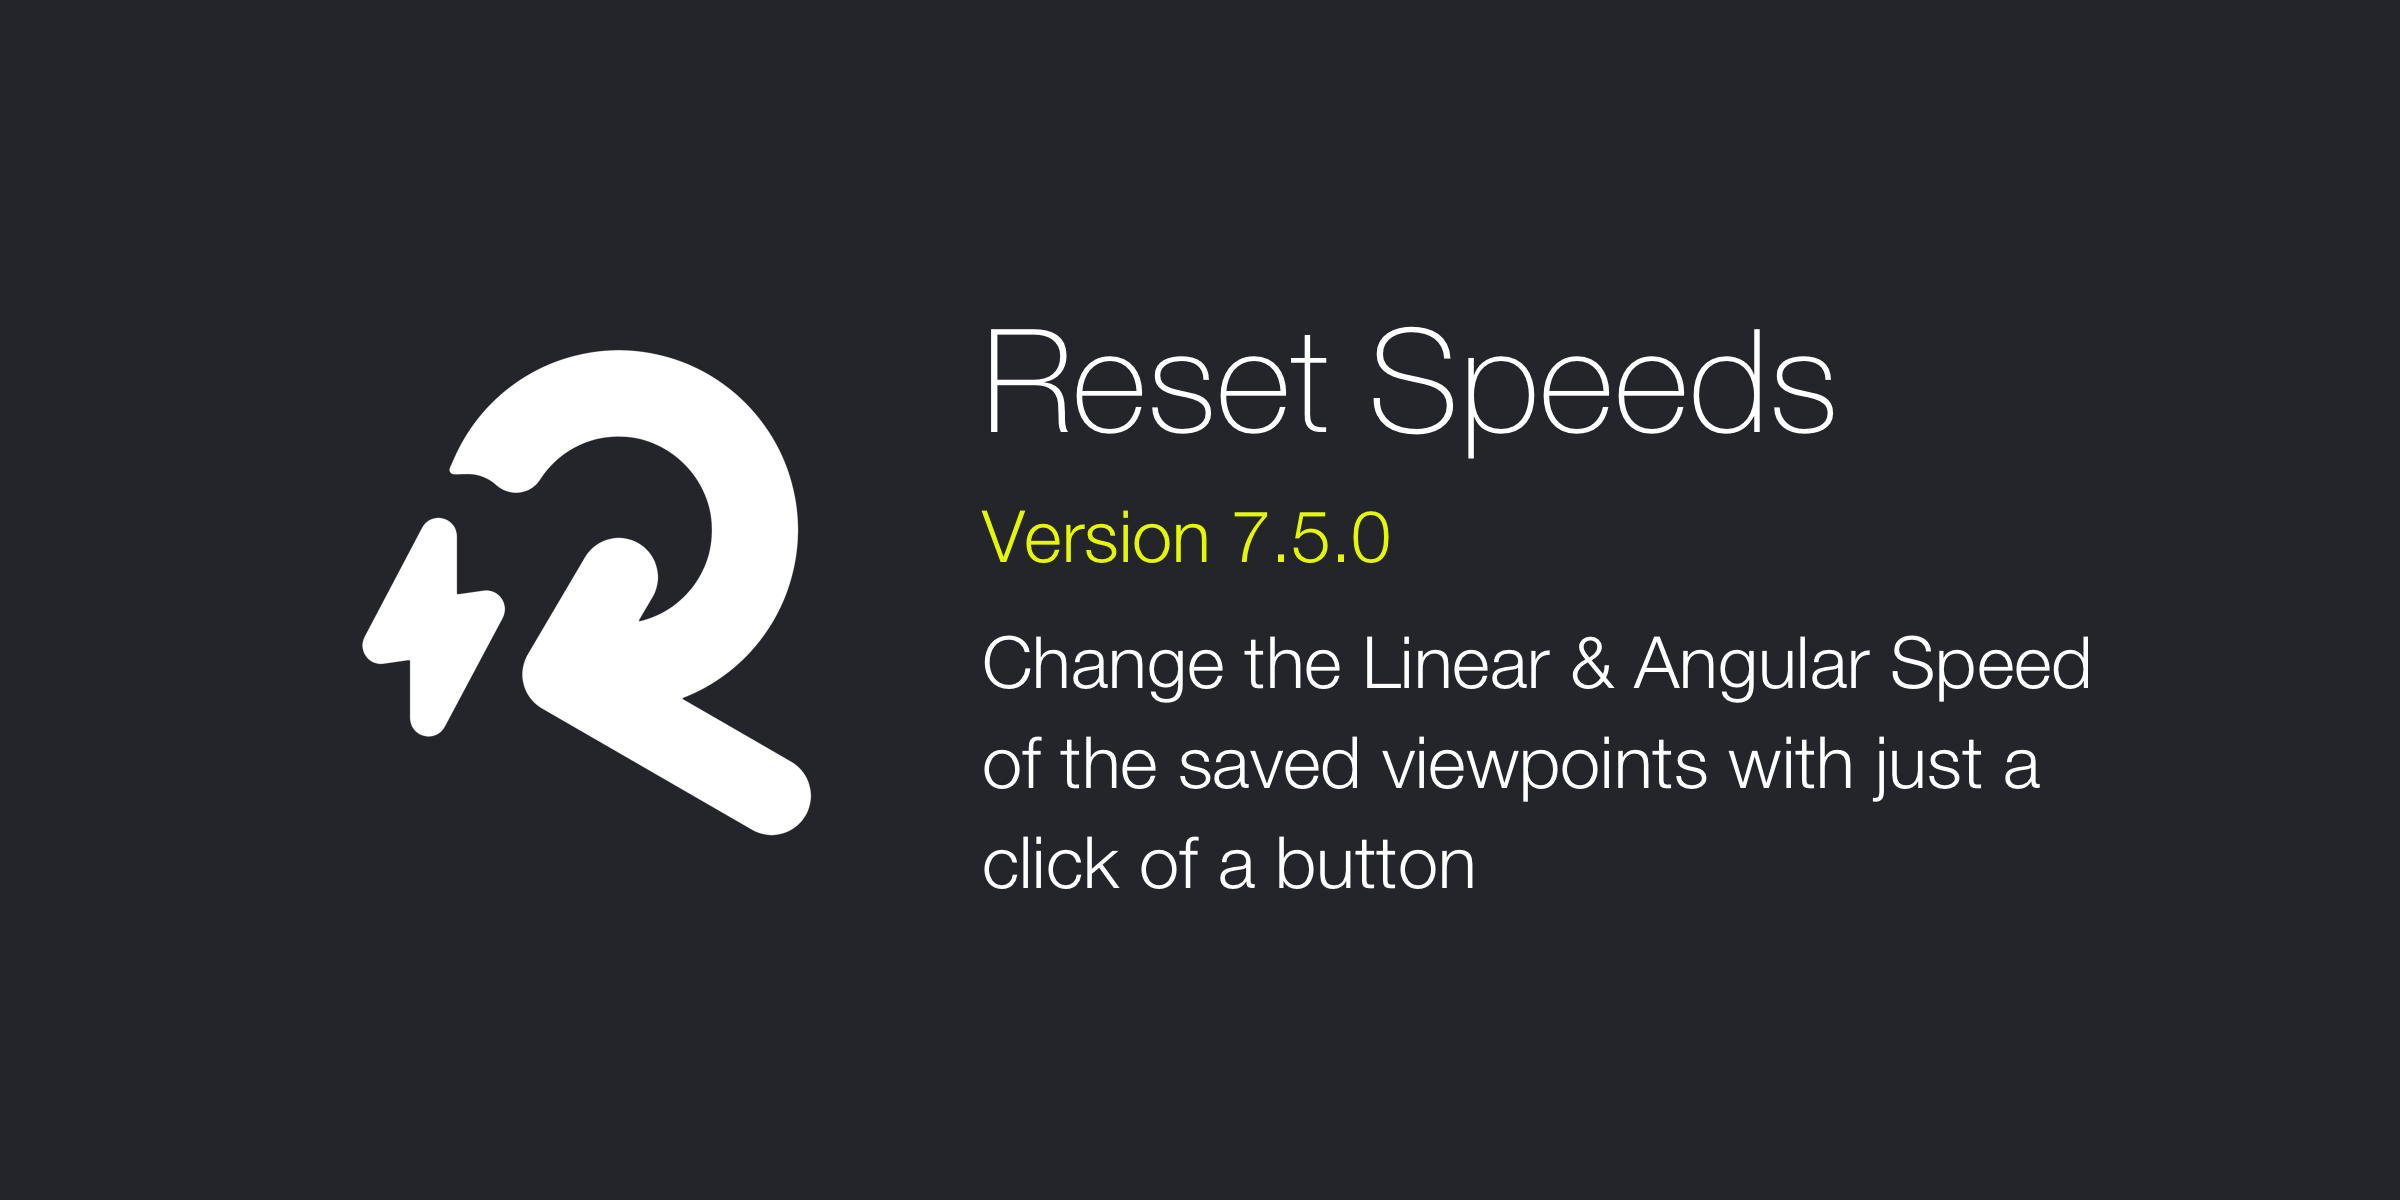 Reset Speeds